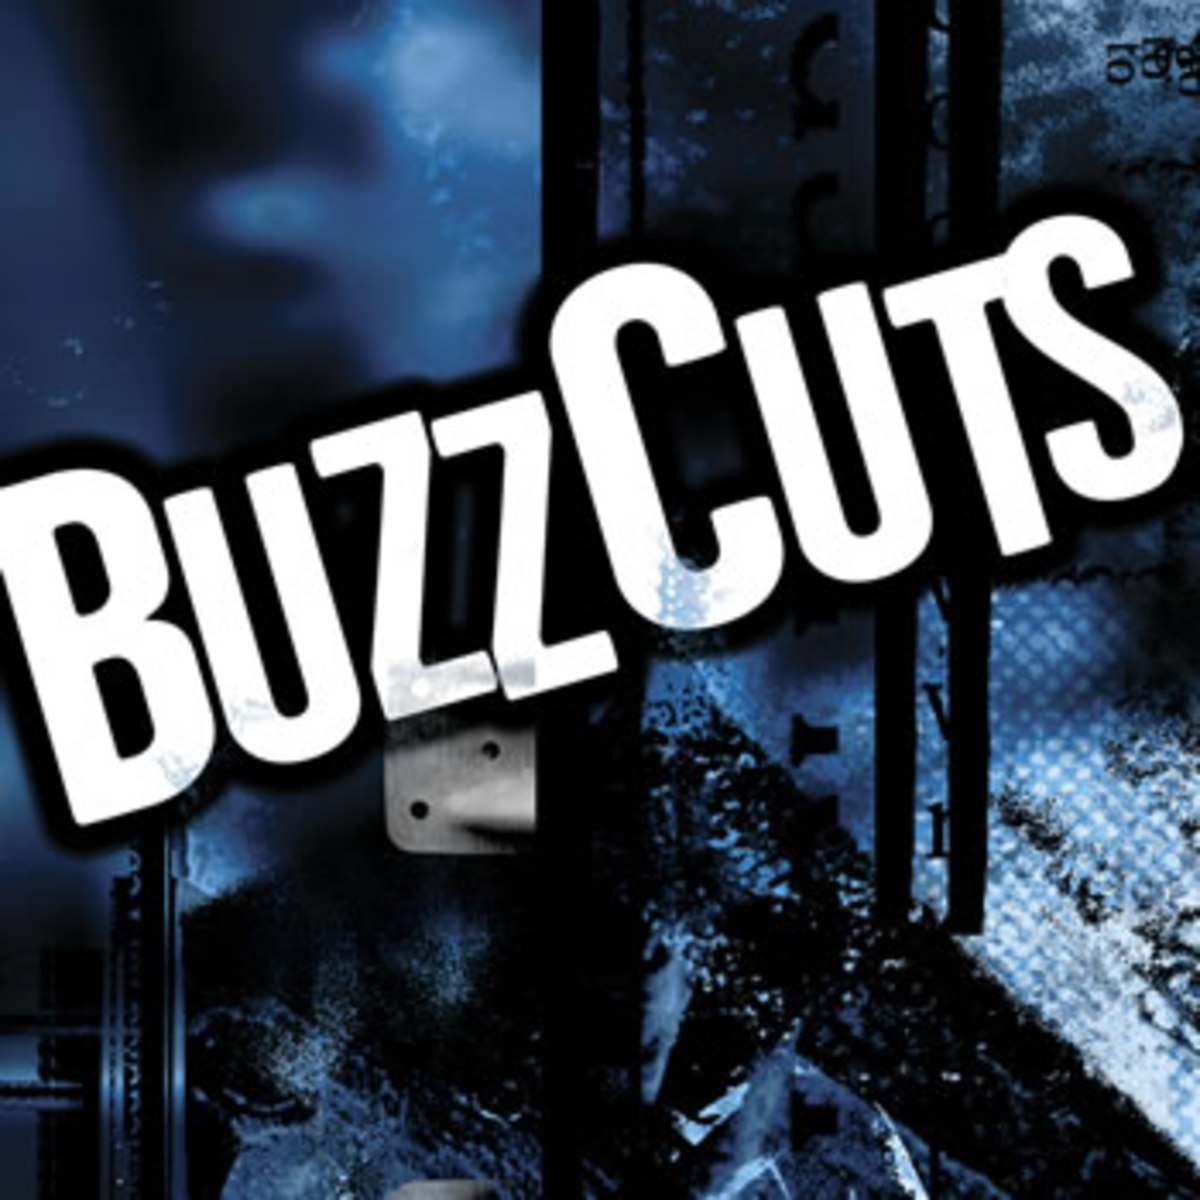 buzz-cuts-cd-and-track-listings